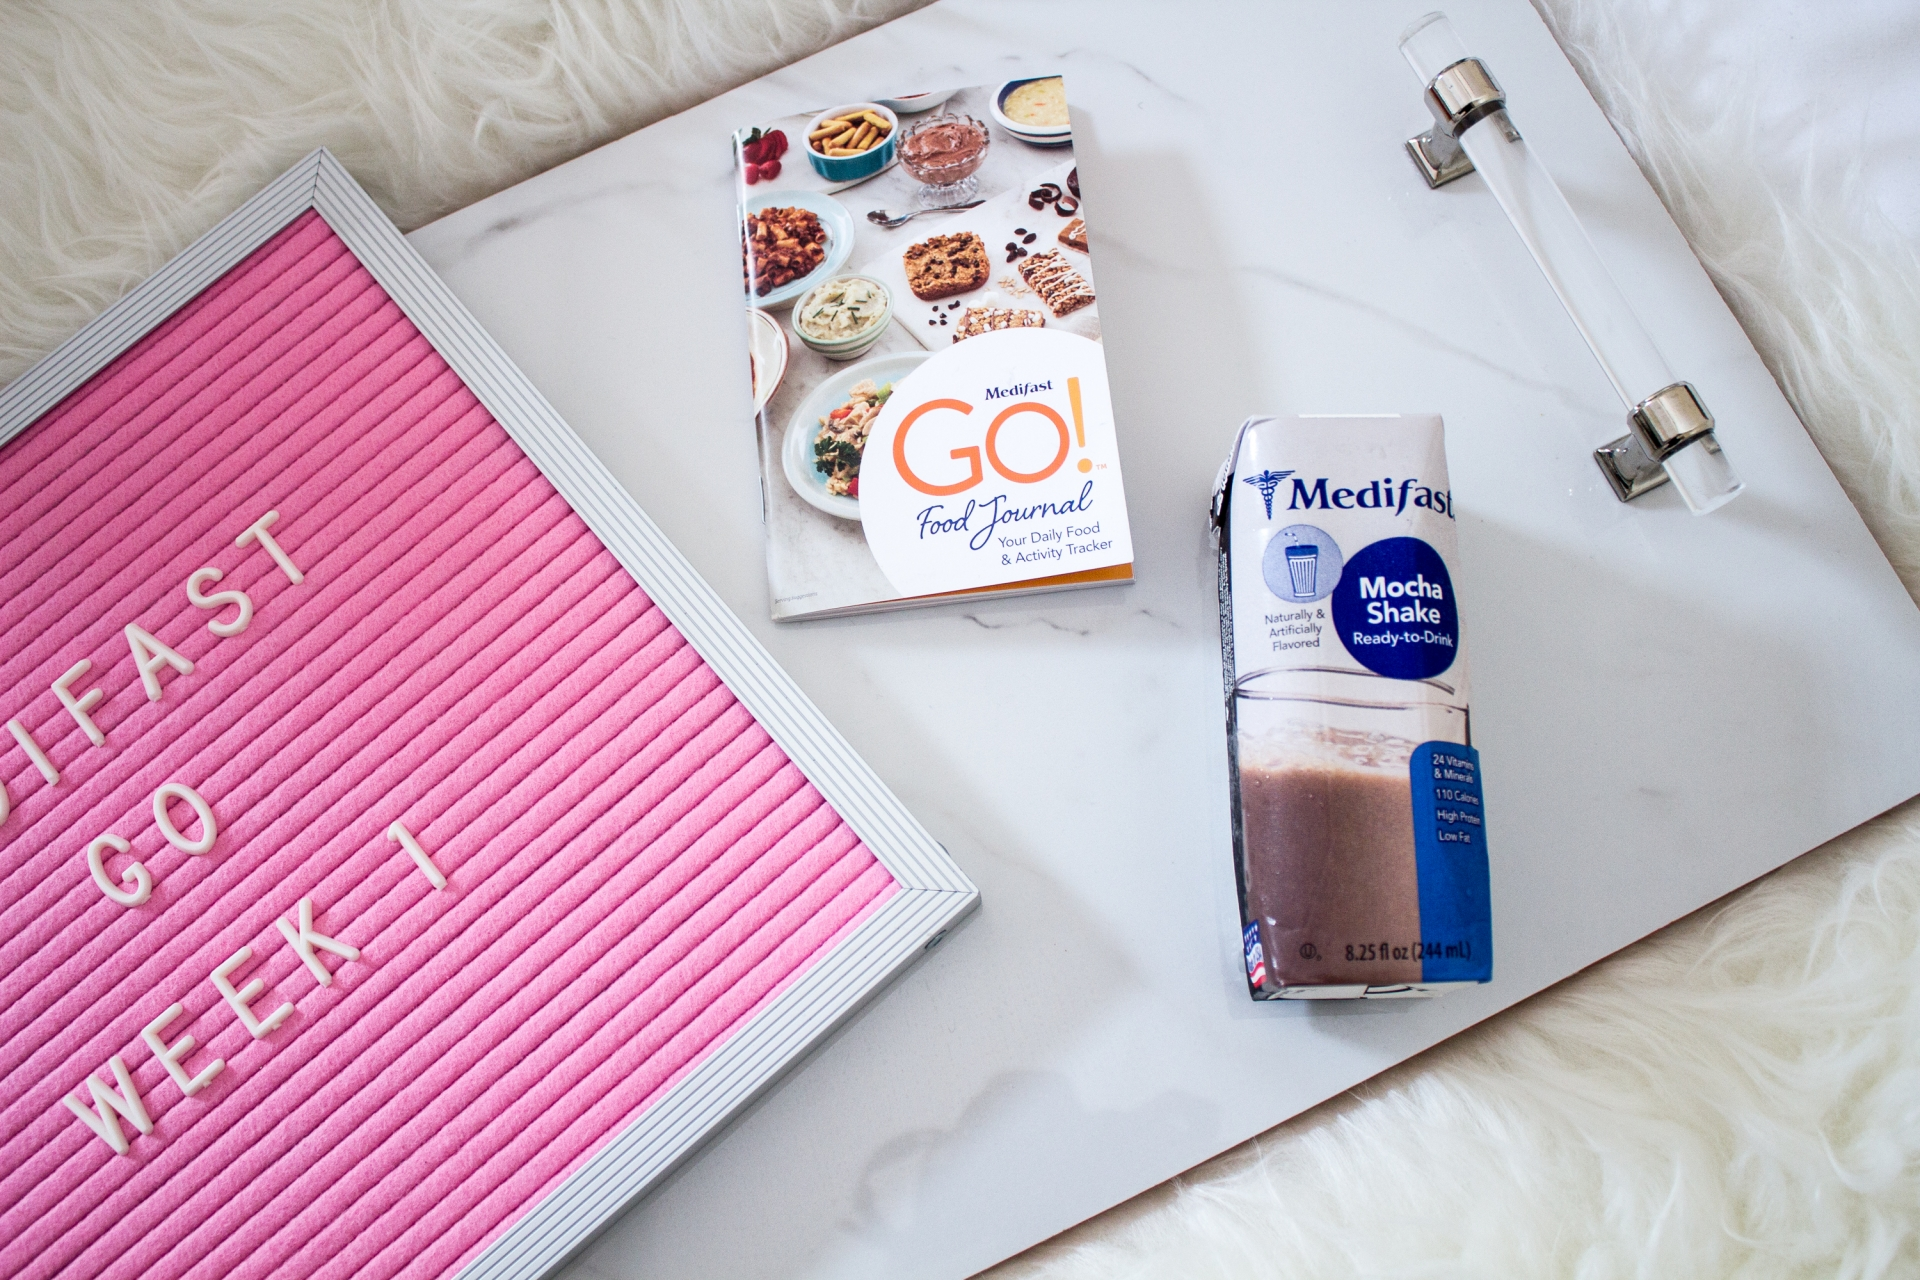 Medifast-Go-Week-1-Update-Food-Journal-Ready-To-Drink-Mocha-Shake